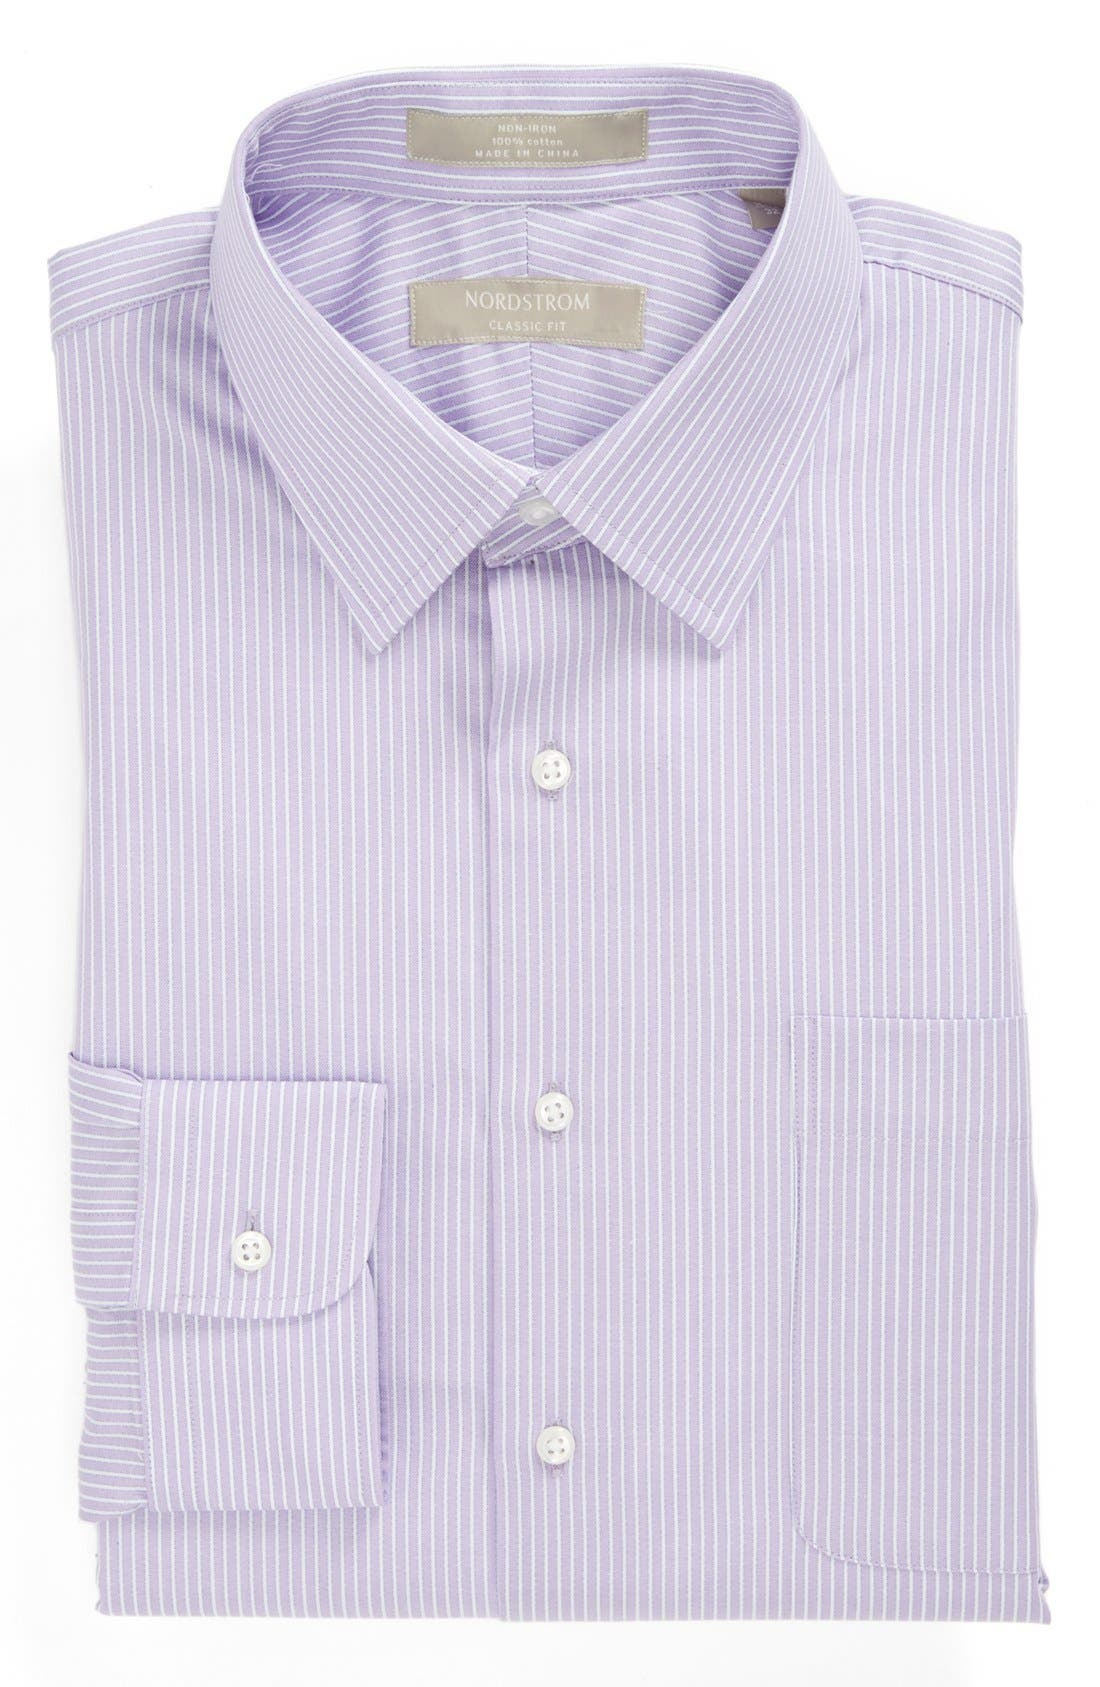 Main Image - Nordstrom Classic Fit Non-Iron Dress Shirt